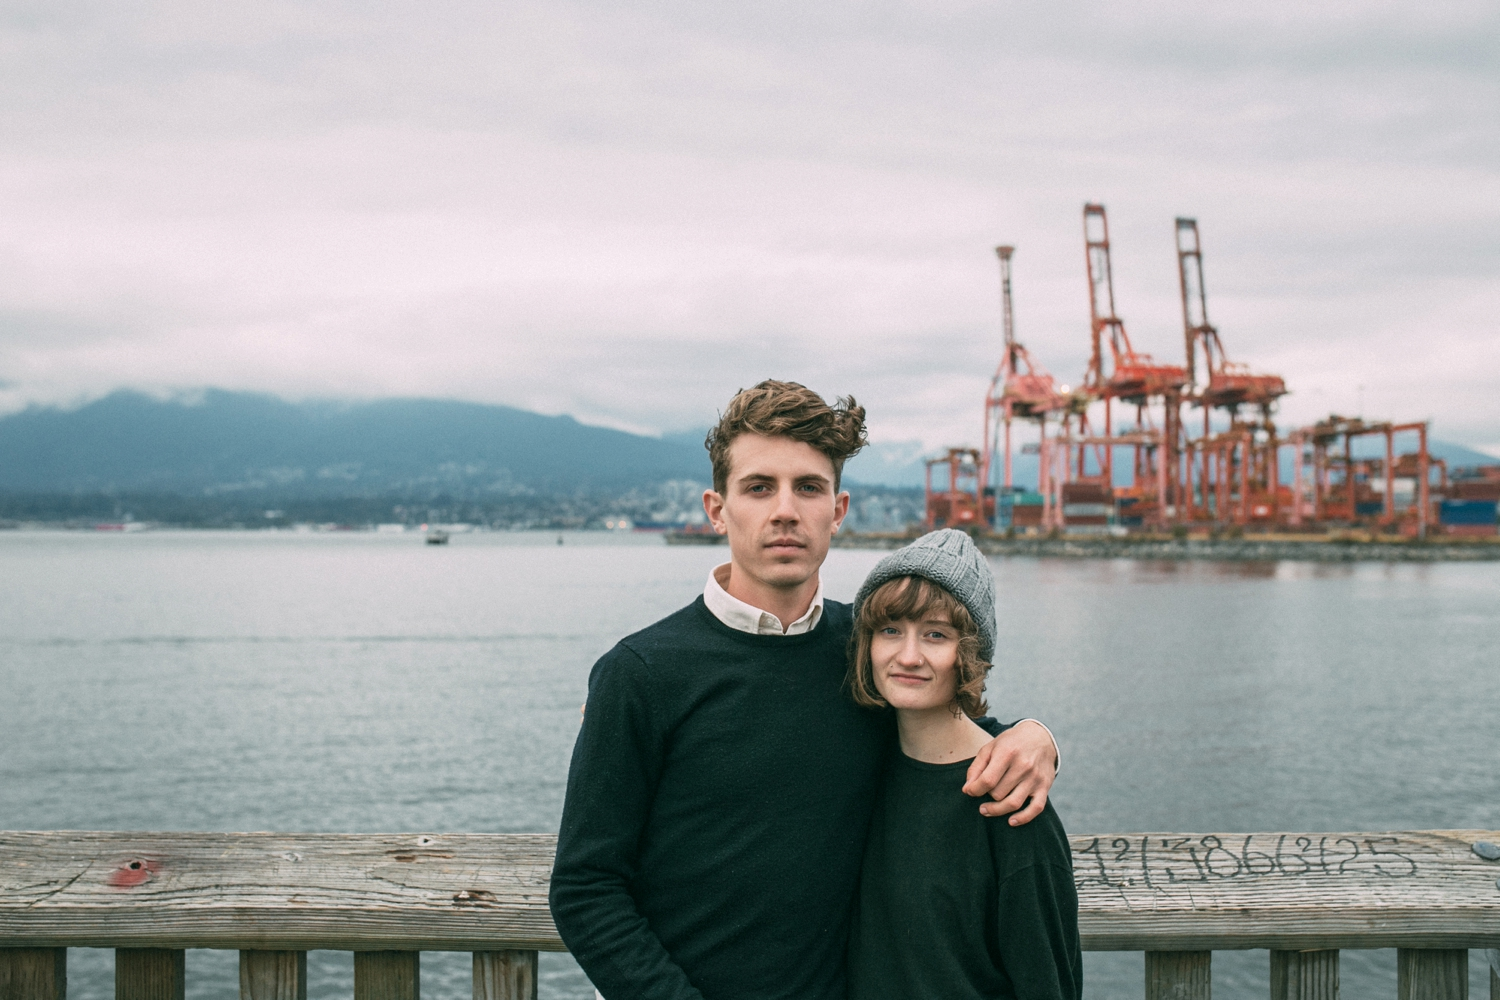 Engagement Photography Session in the harbour overlooking the sea in Vancouver